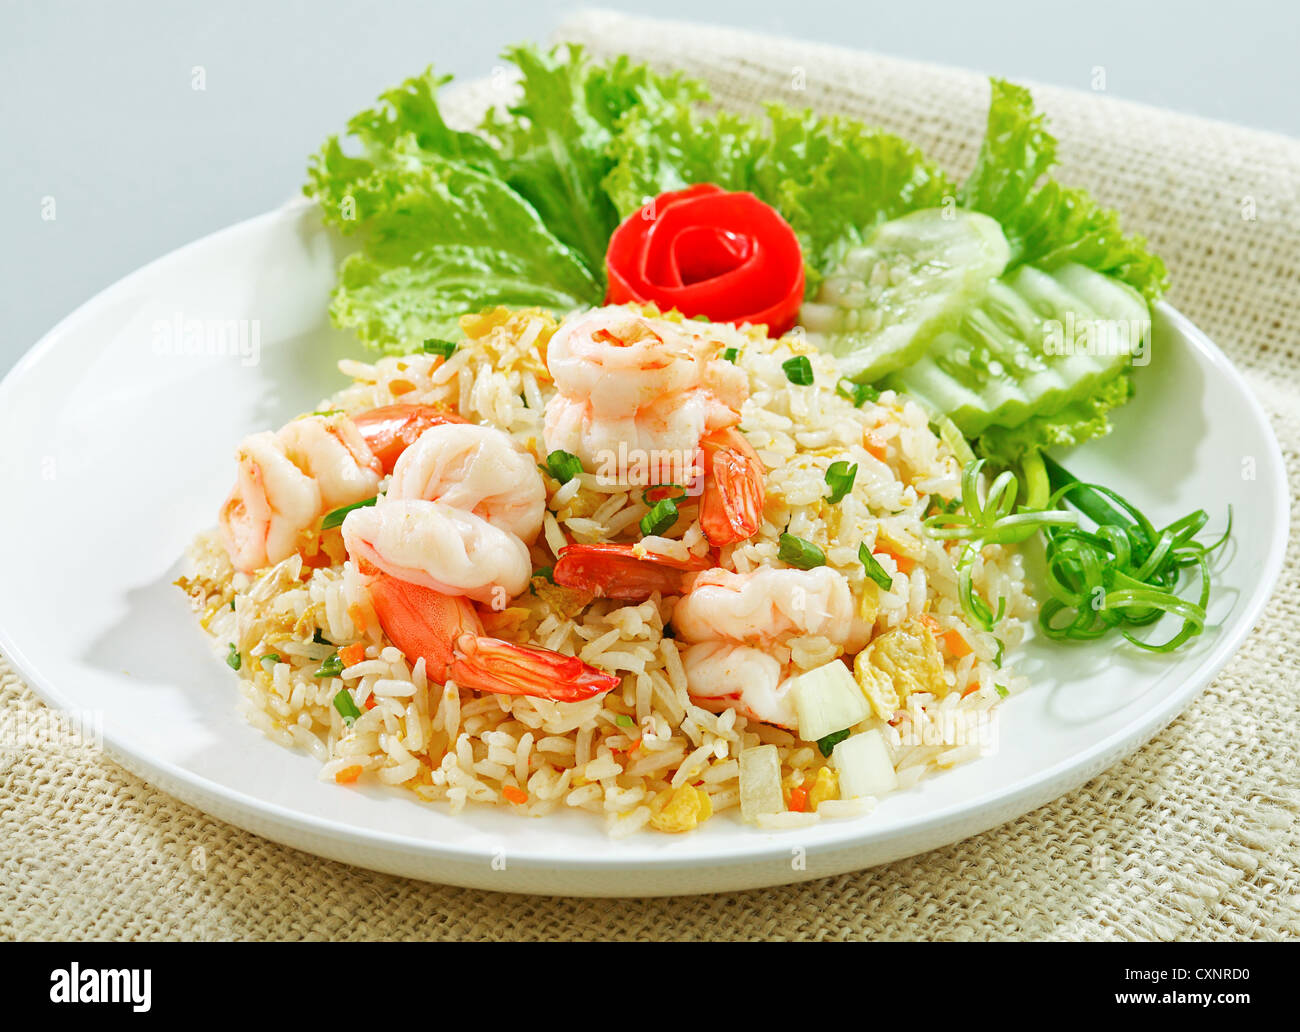 Fried Rice With Shrimp Or Prawn A Taste Of Asian Food Isolated Stock